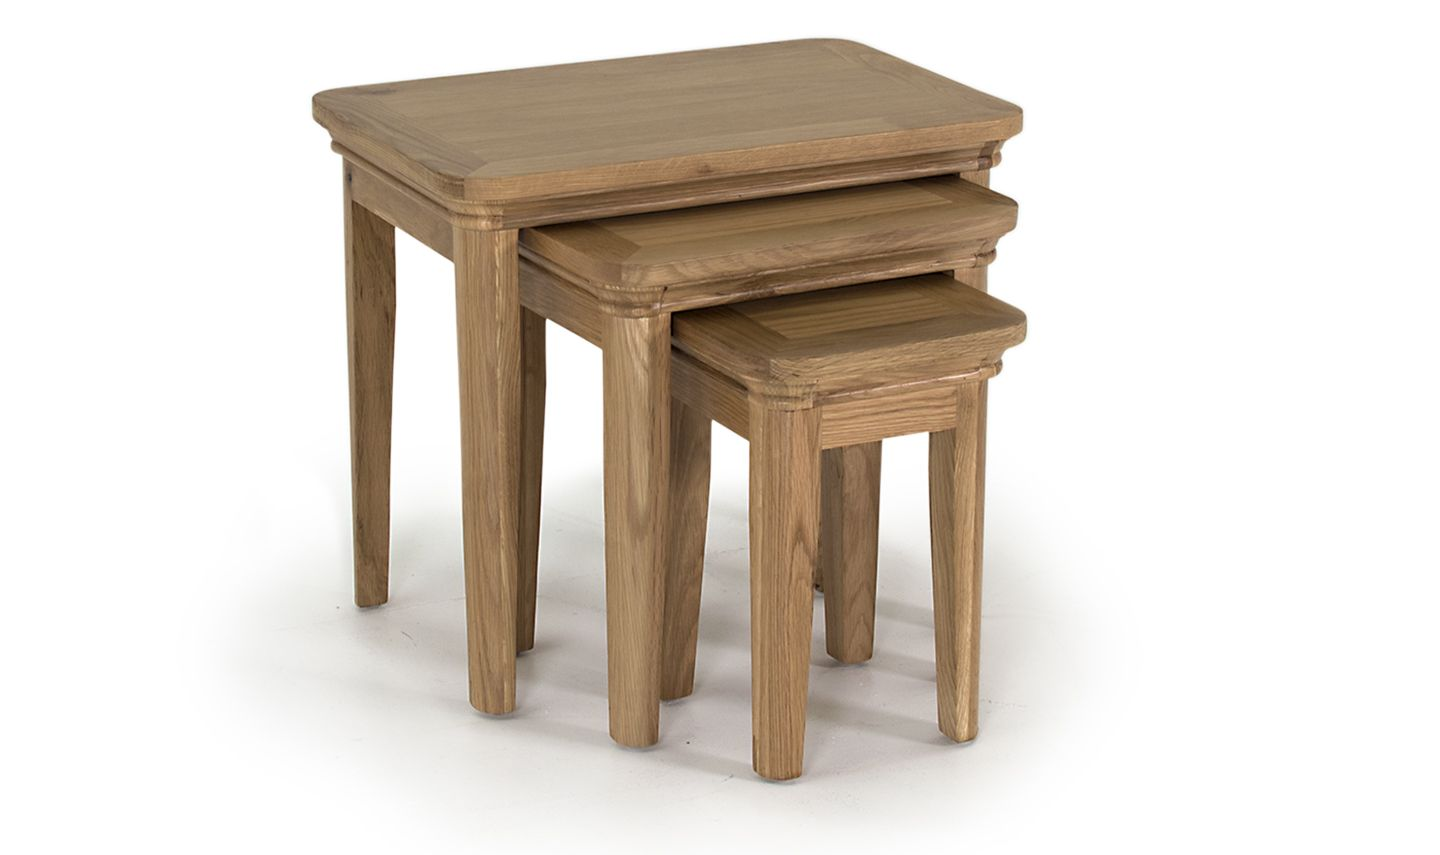 Solid Oak Nest Of Tables Uk Choice Image Bar Height